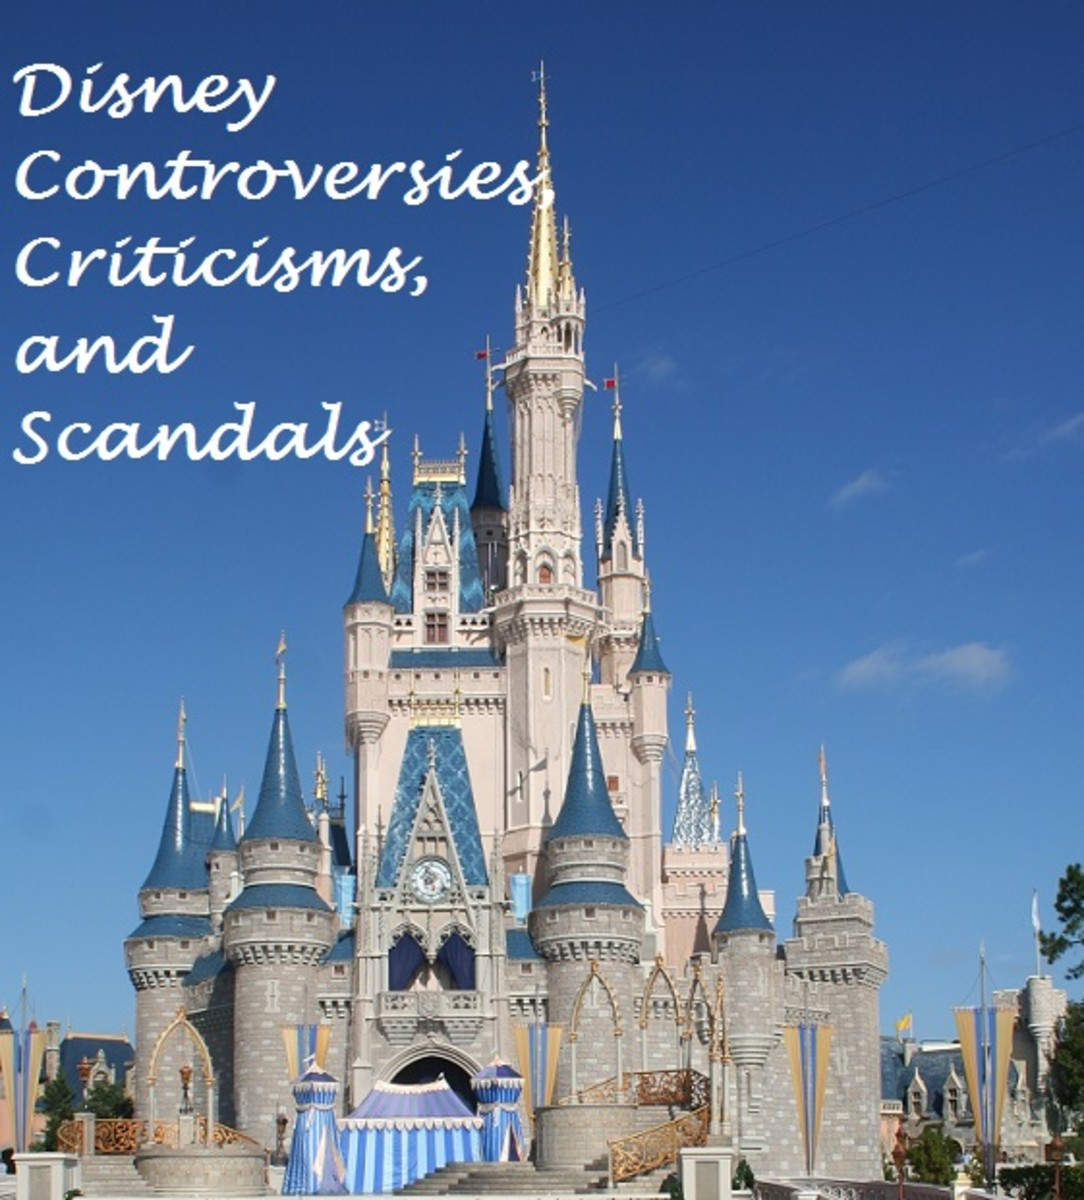 Recent Disney Controversies, Criticisms, and Scandals